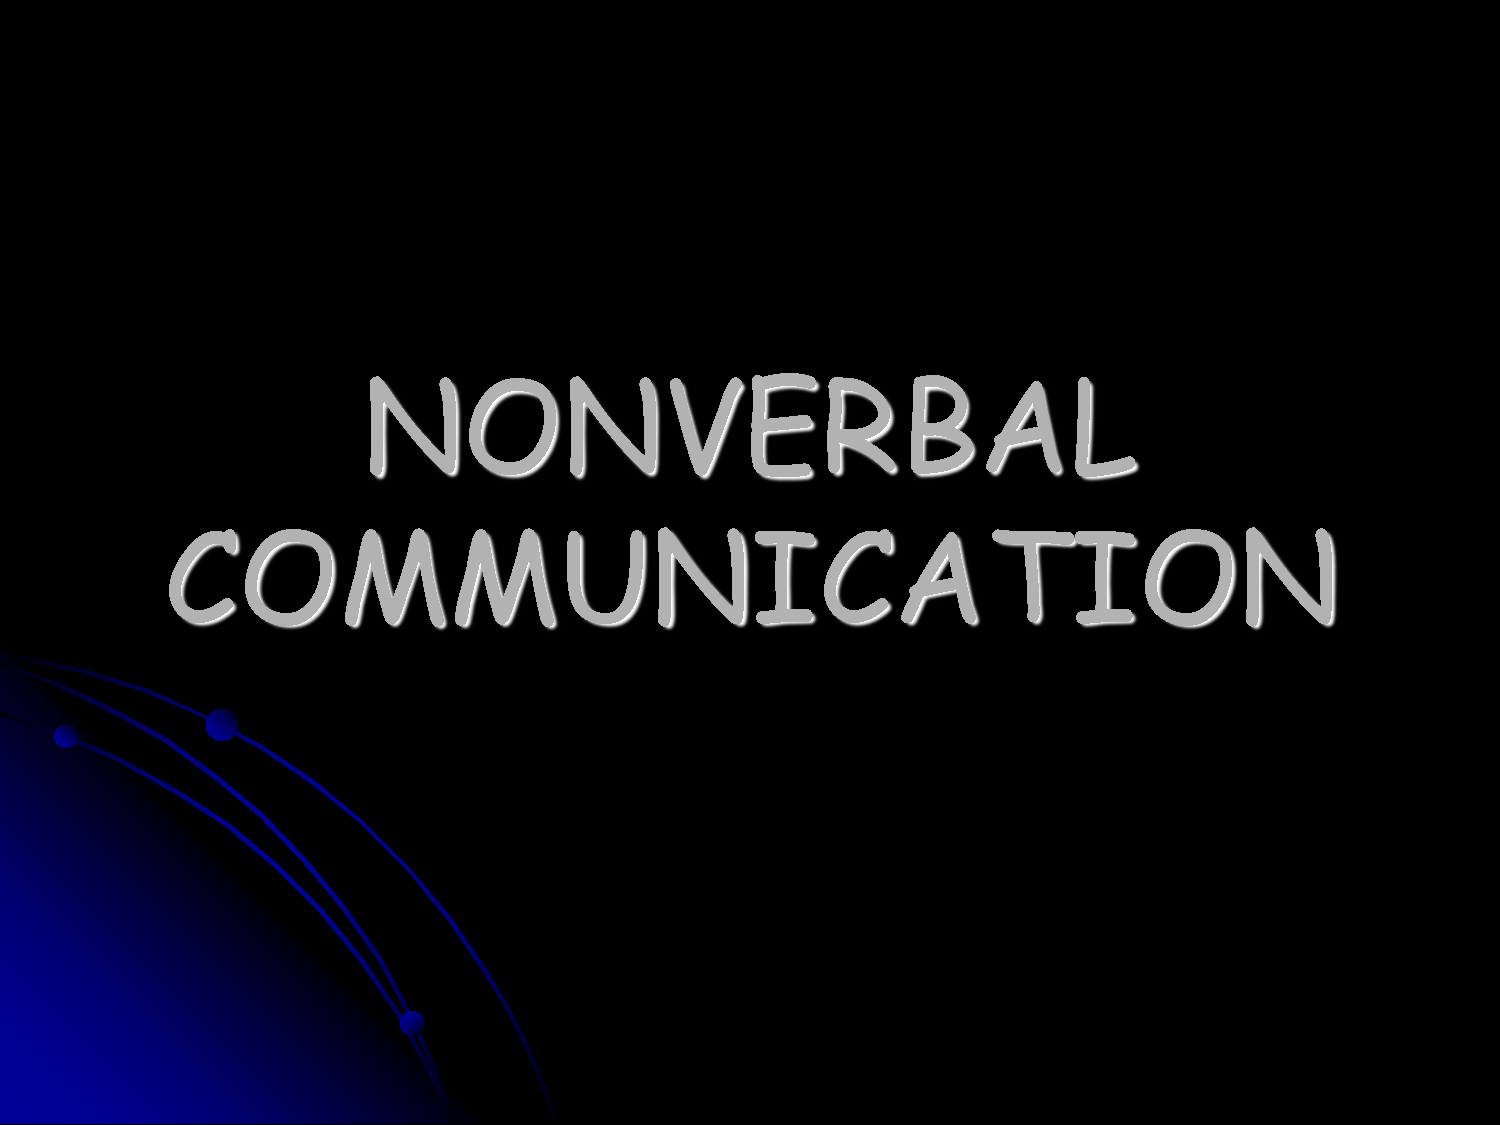 nonverbal comunication In fact, nonverbal behavior is the most crucial aspect of communication based on my own research, i would state that the amount of communication that is nonverbal varies between 60 and 90% on a daily basis.